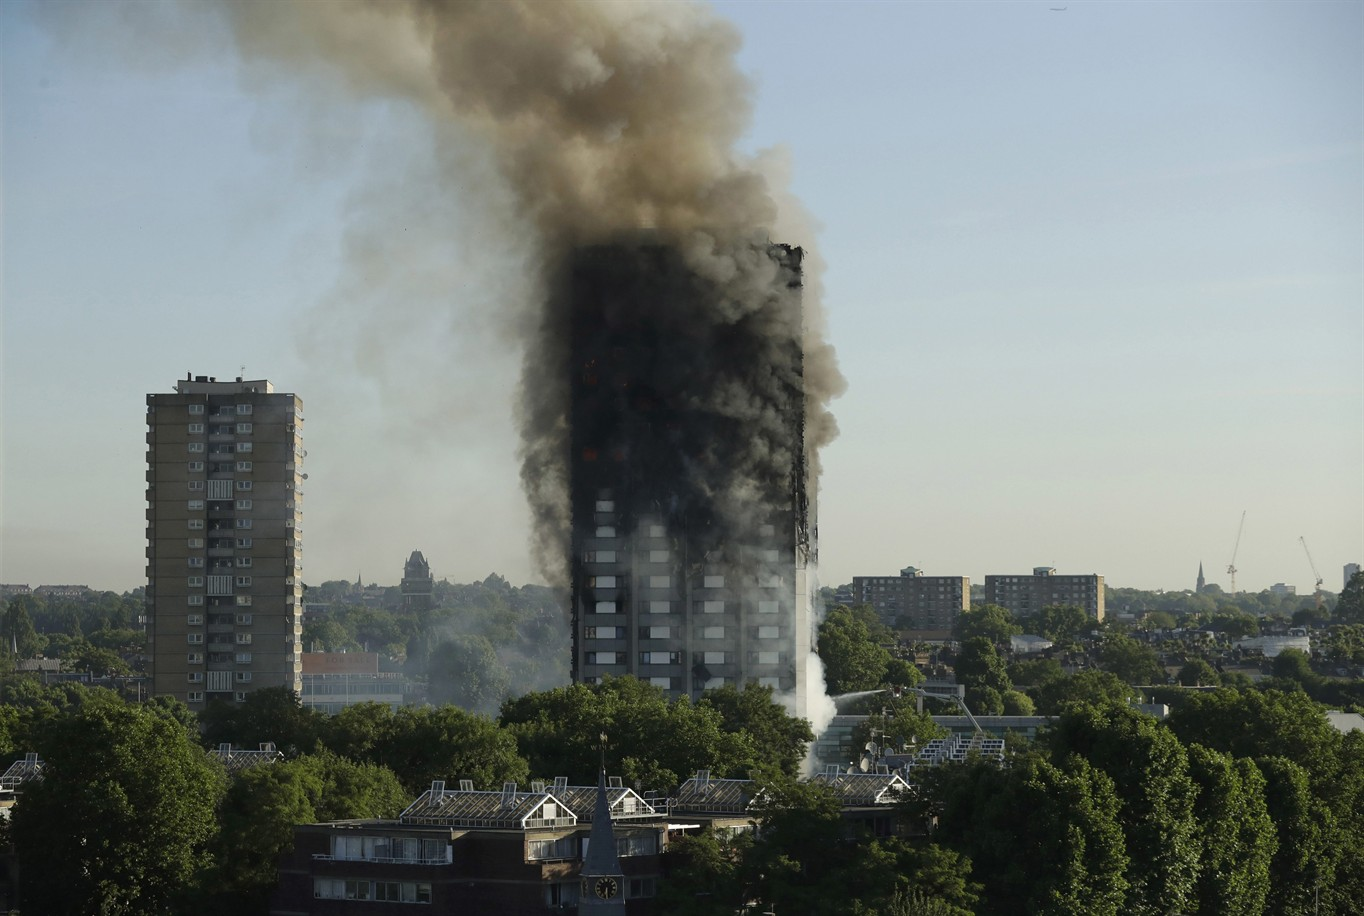 London fire: Death toll climbs to 79